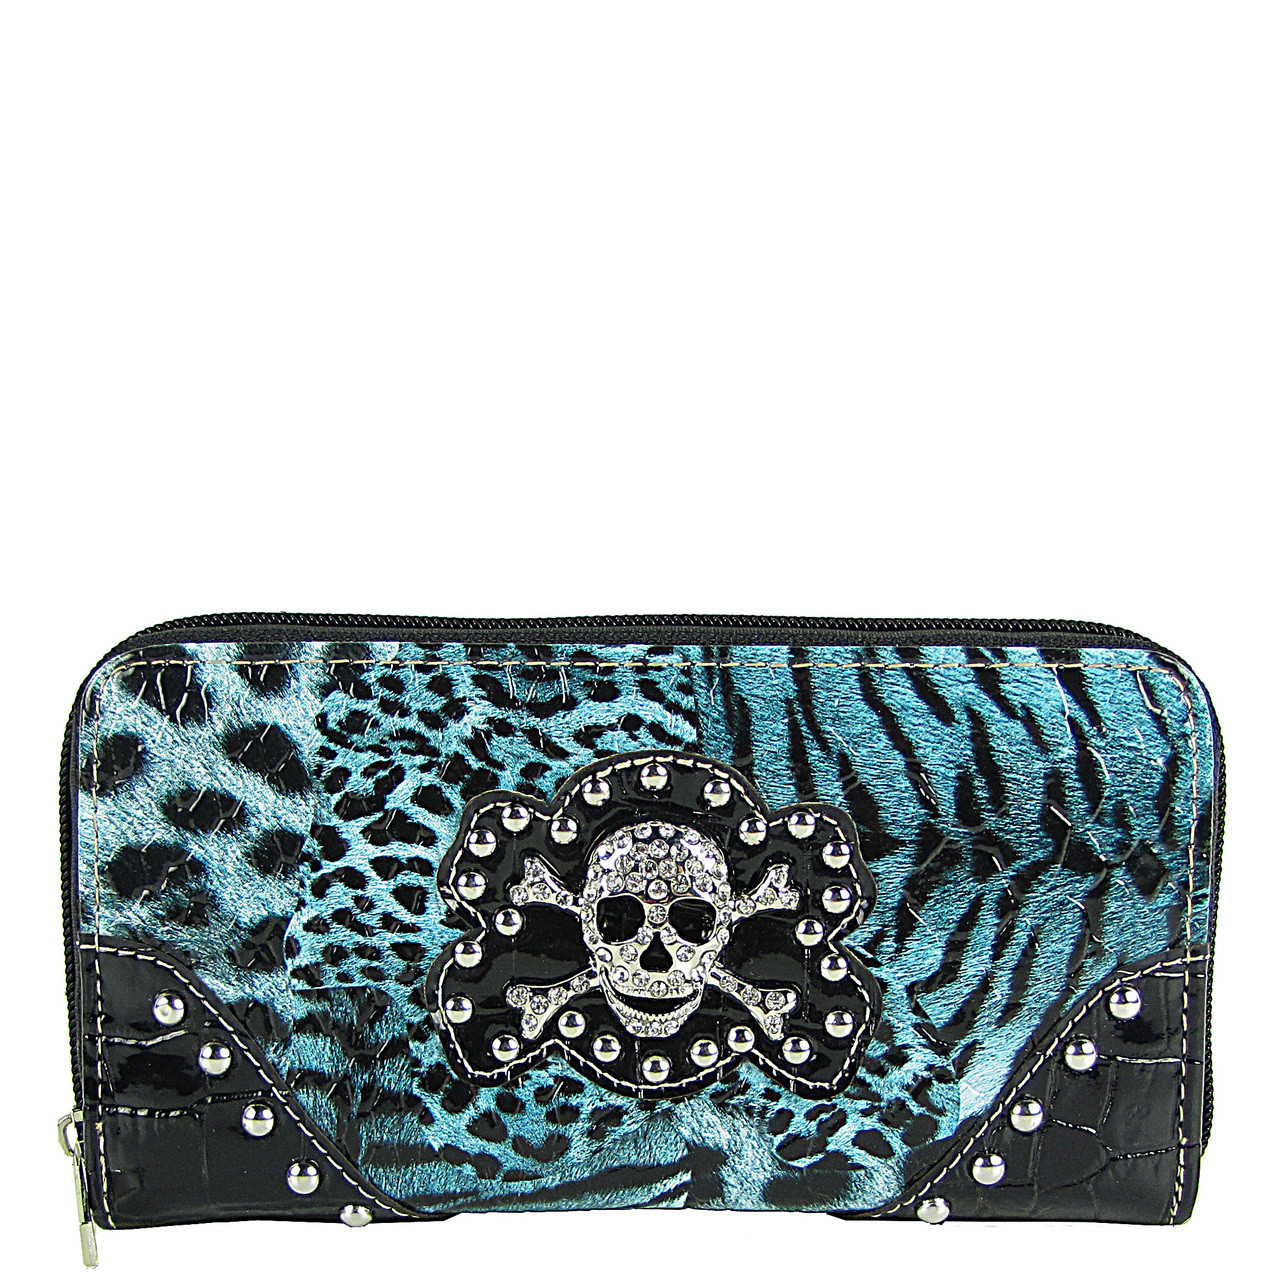 TURQUOISE STUDDED LEAPORD SKULL LOOK ZIPPER WALLET CB3-1203TRQ